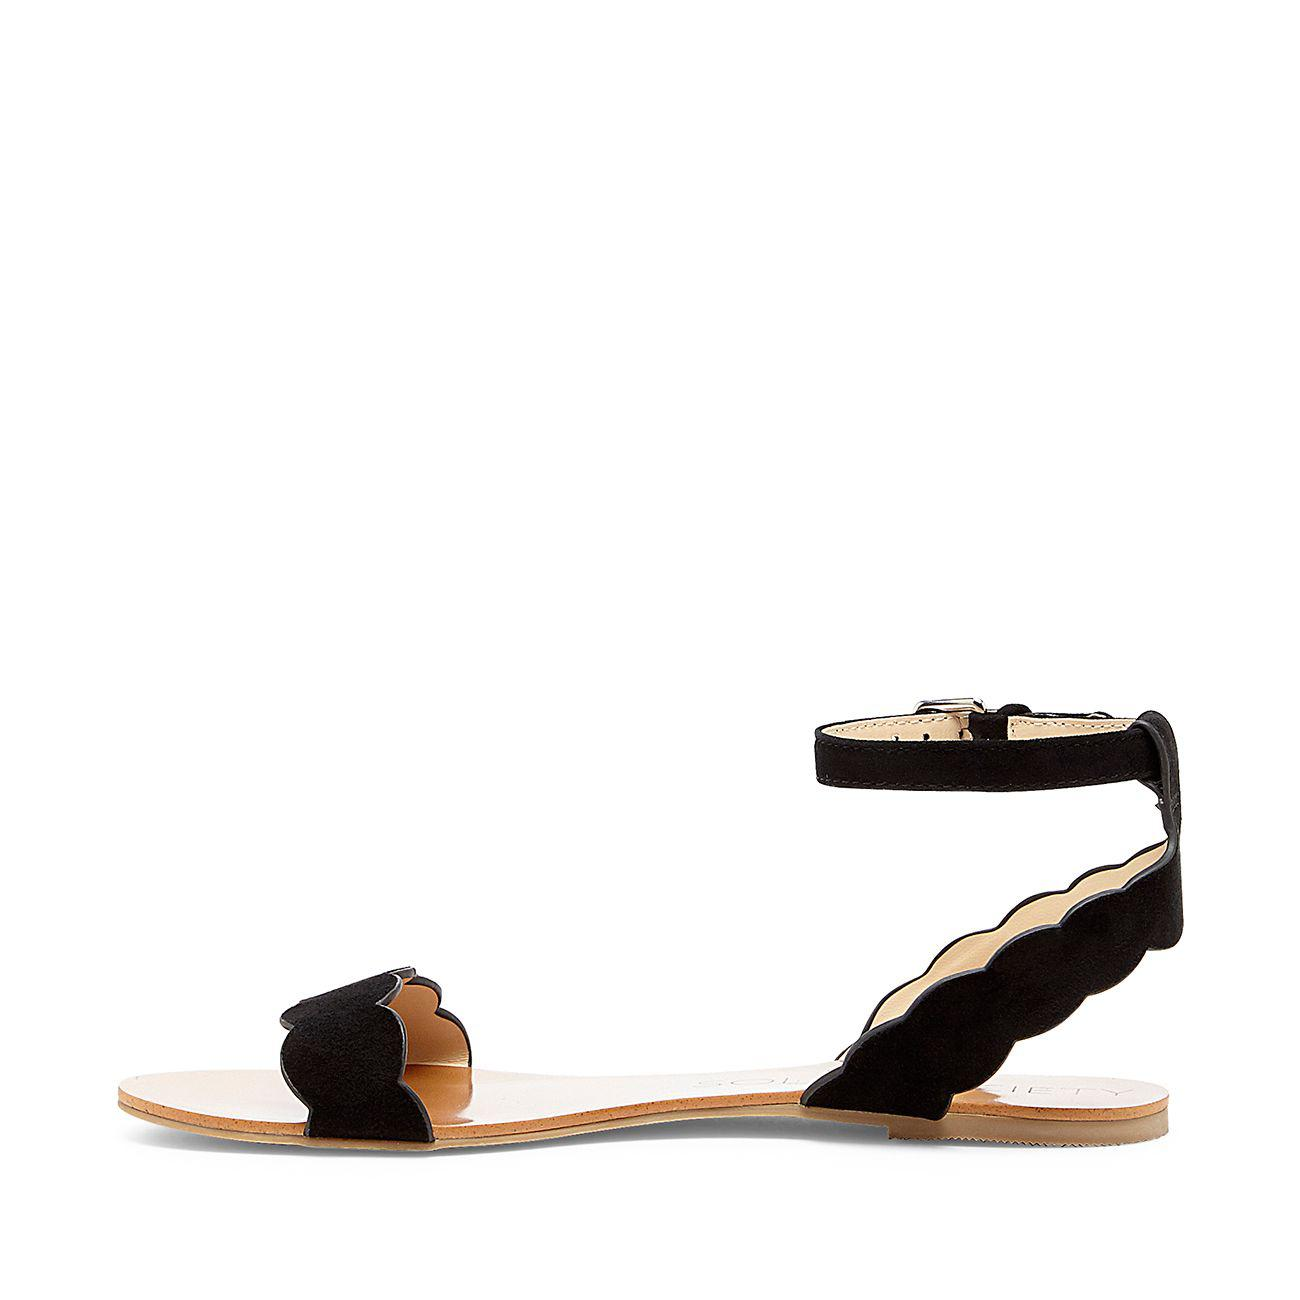 fe56445459a Lyst - Sole Society Odette Scalloped Flat Sandal in Black